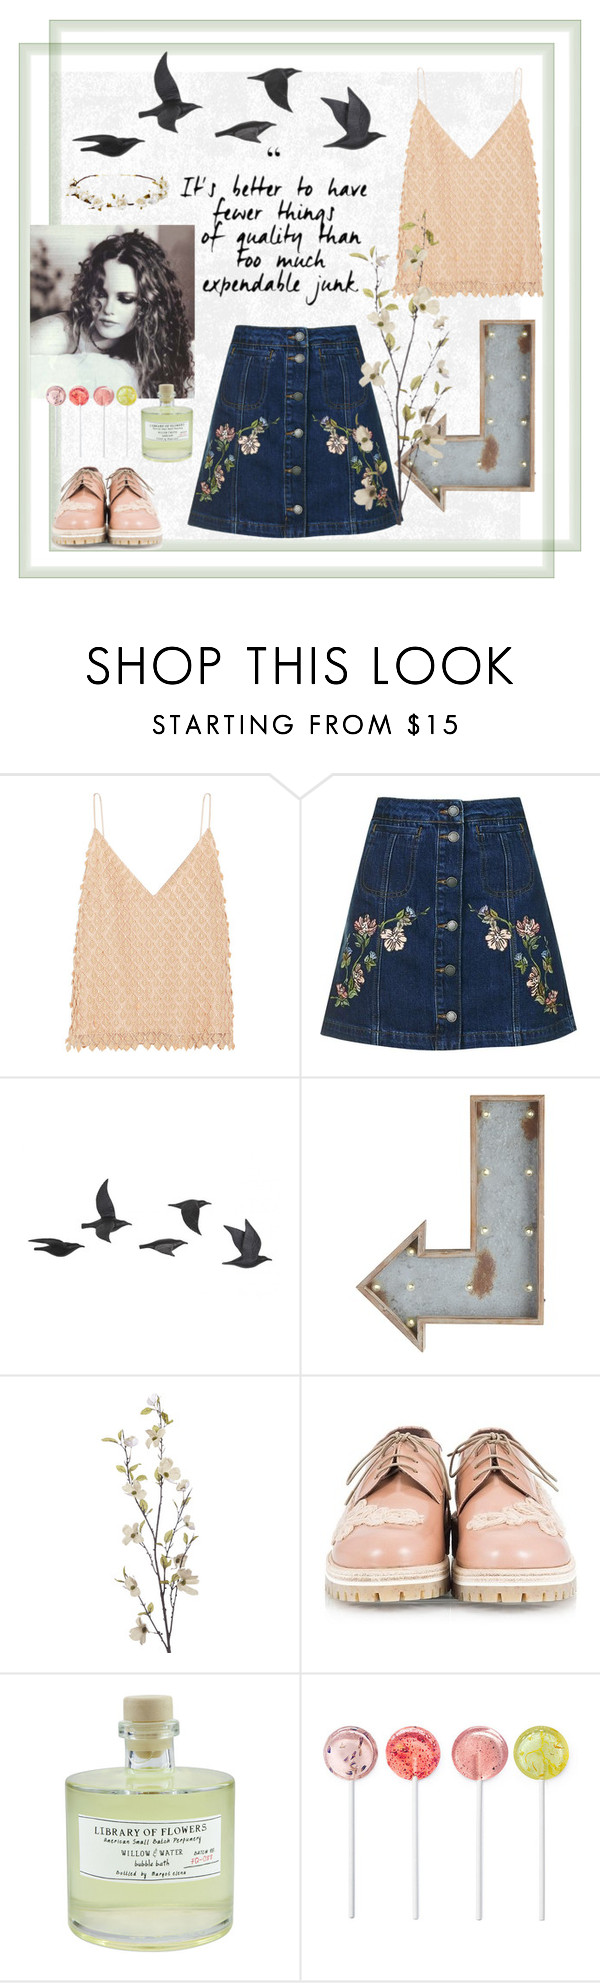 """""""// e m b r o i d o r y //"""" by modestboho ❤ liked on Polyvore featuring Balenciaga, Topshop, Jayson Home, Pier 1 Imports, Attilio Giusti Leombruni, Library of Flowers and Cult Gaia"""